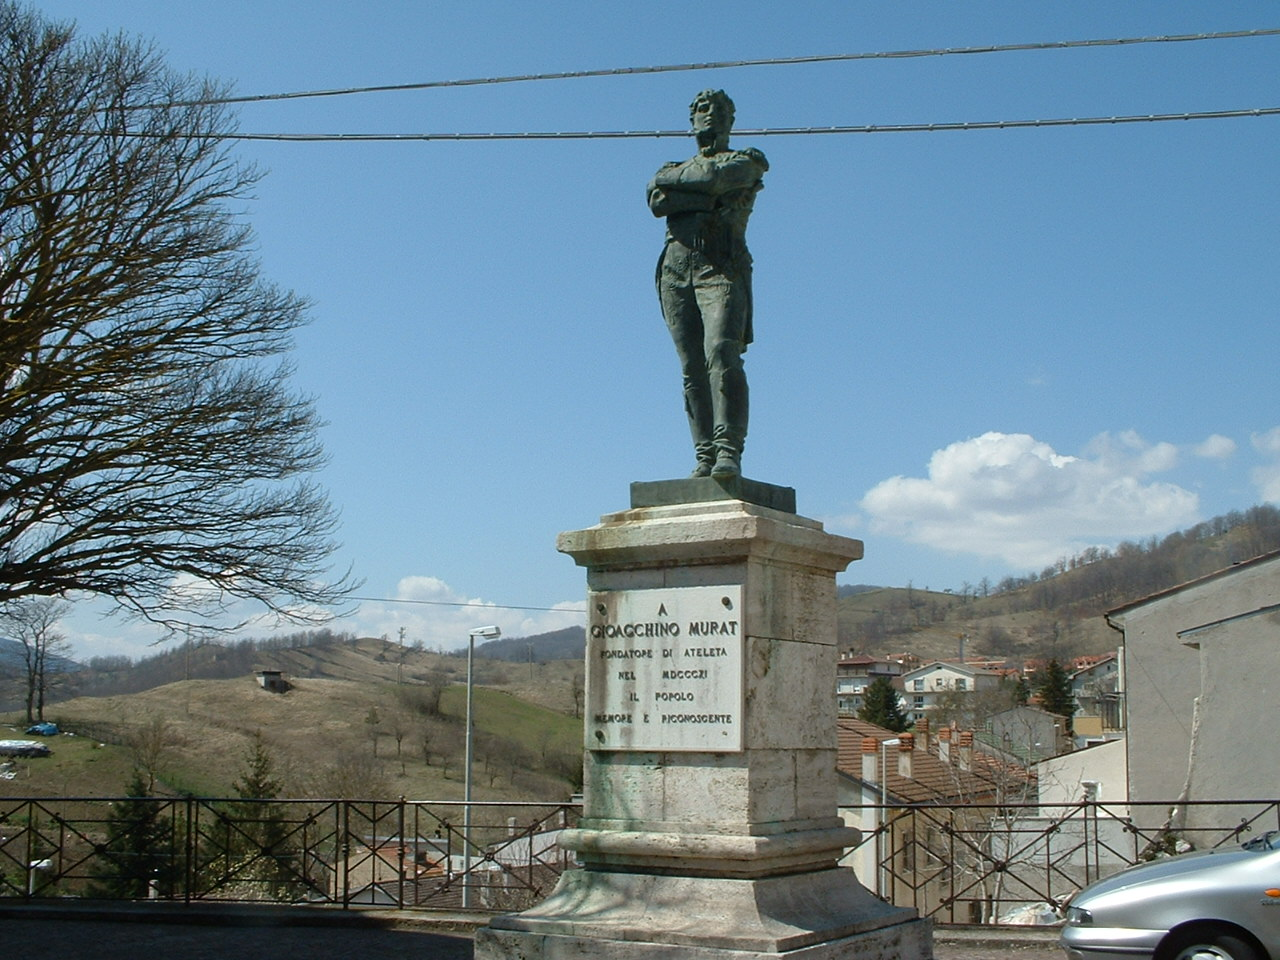 The statue of Gioacchino Murat in Ateleta